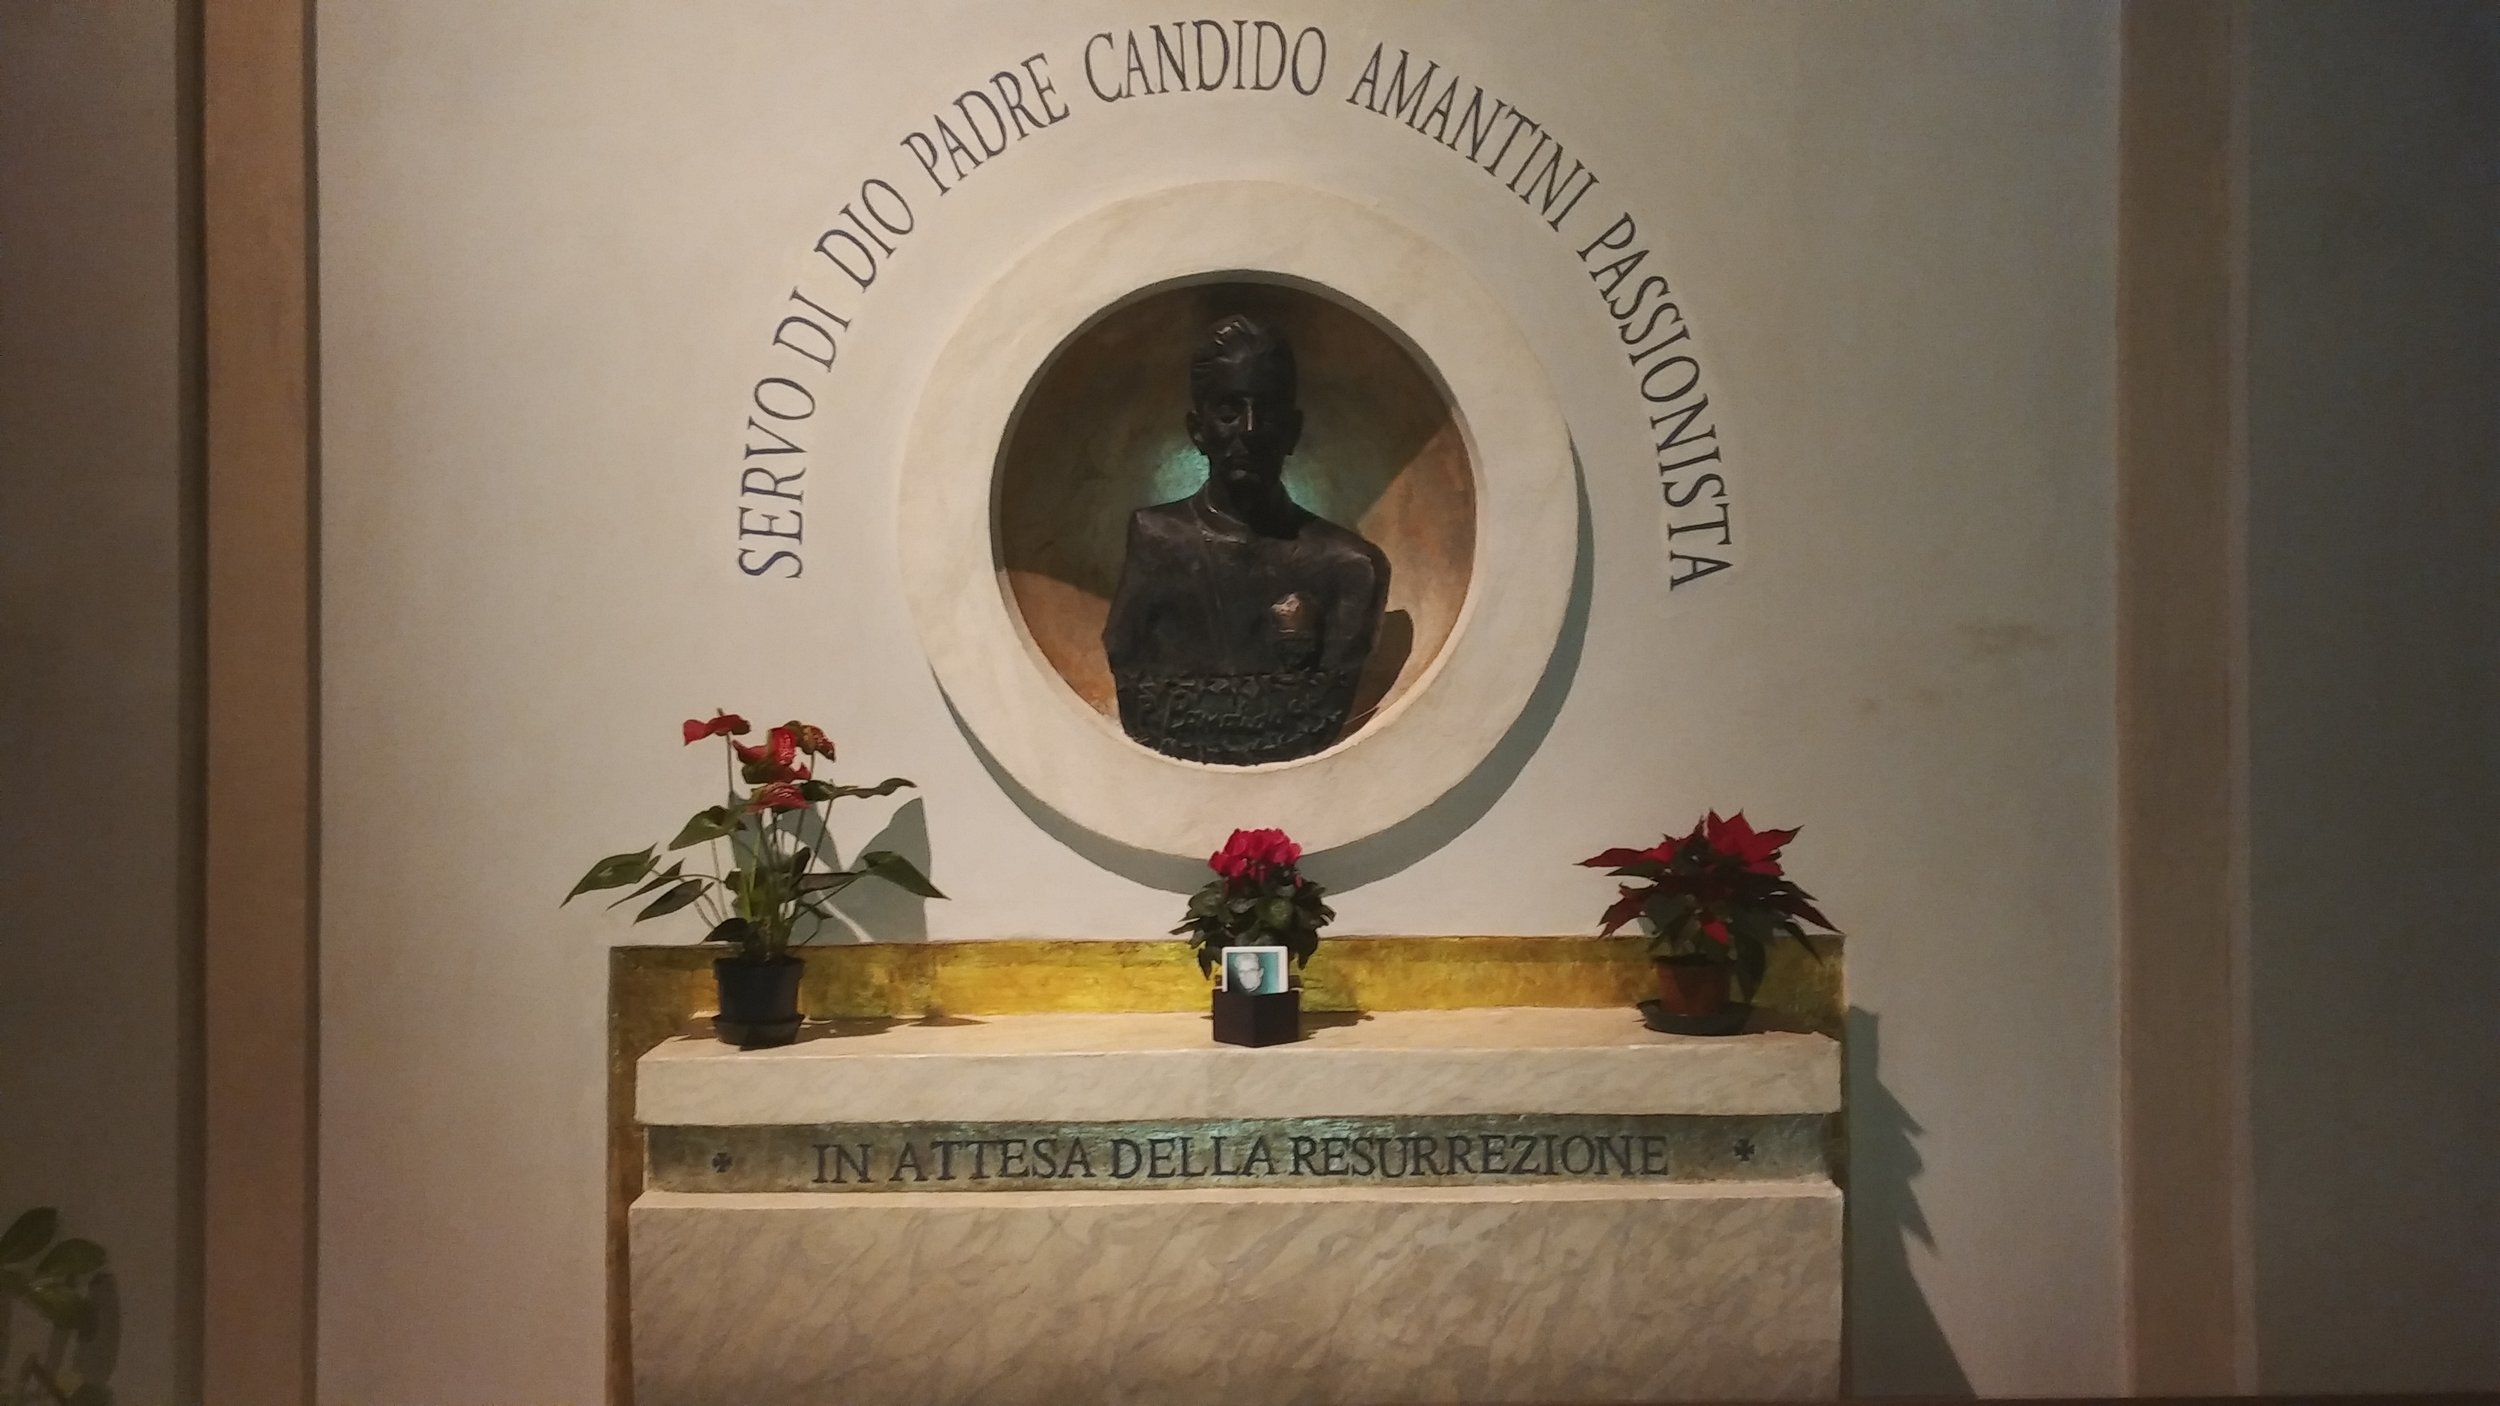 The tomb of Servant of God, P. Candido Amantini, CP at the Scala Sancta in Rome.